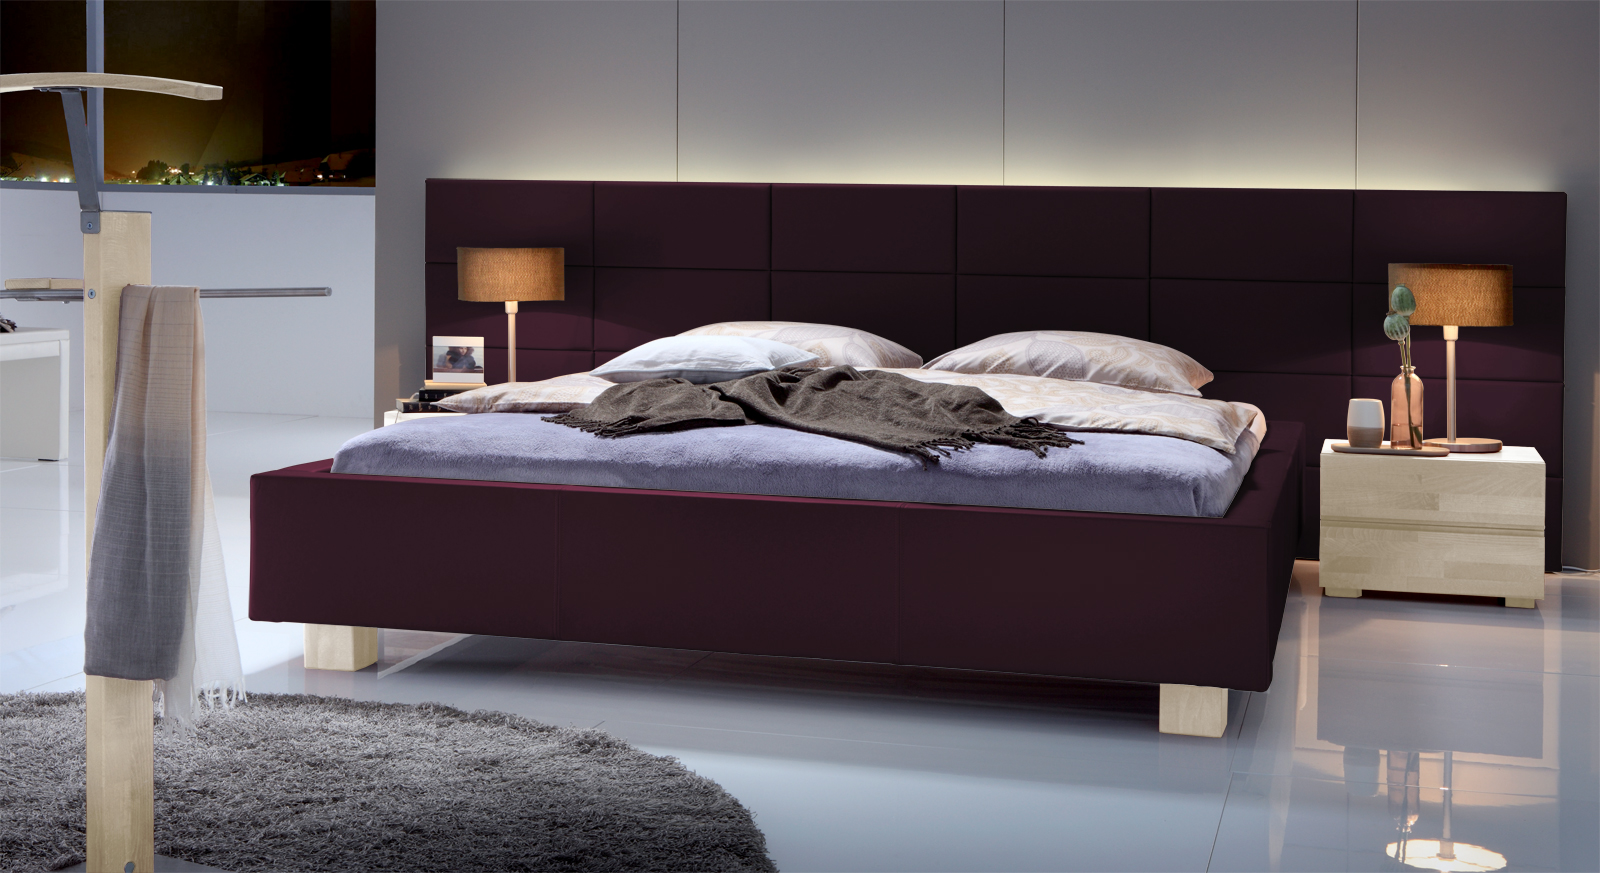 Bett Mill Creek Wandpaneel Violett Kunstleder Weiss